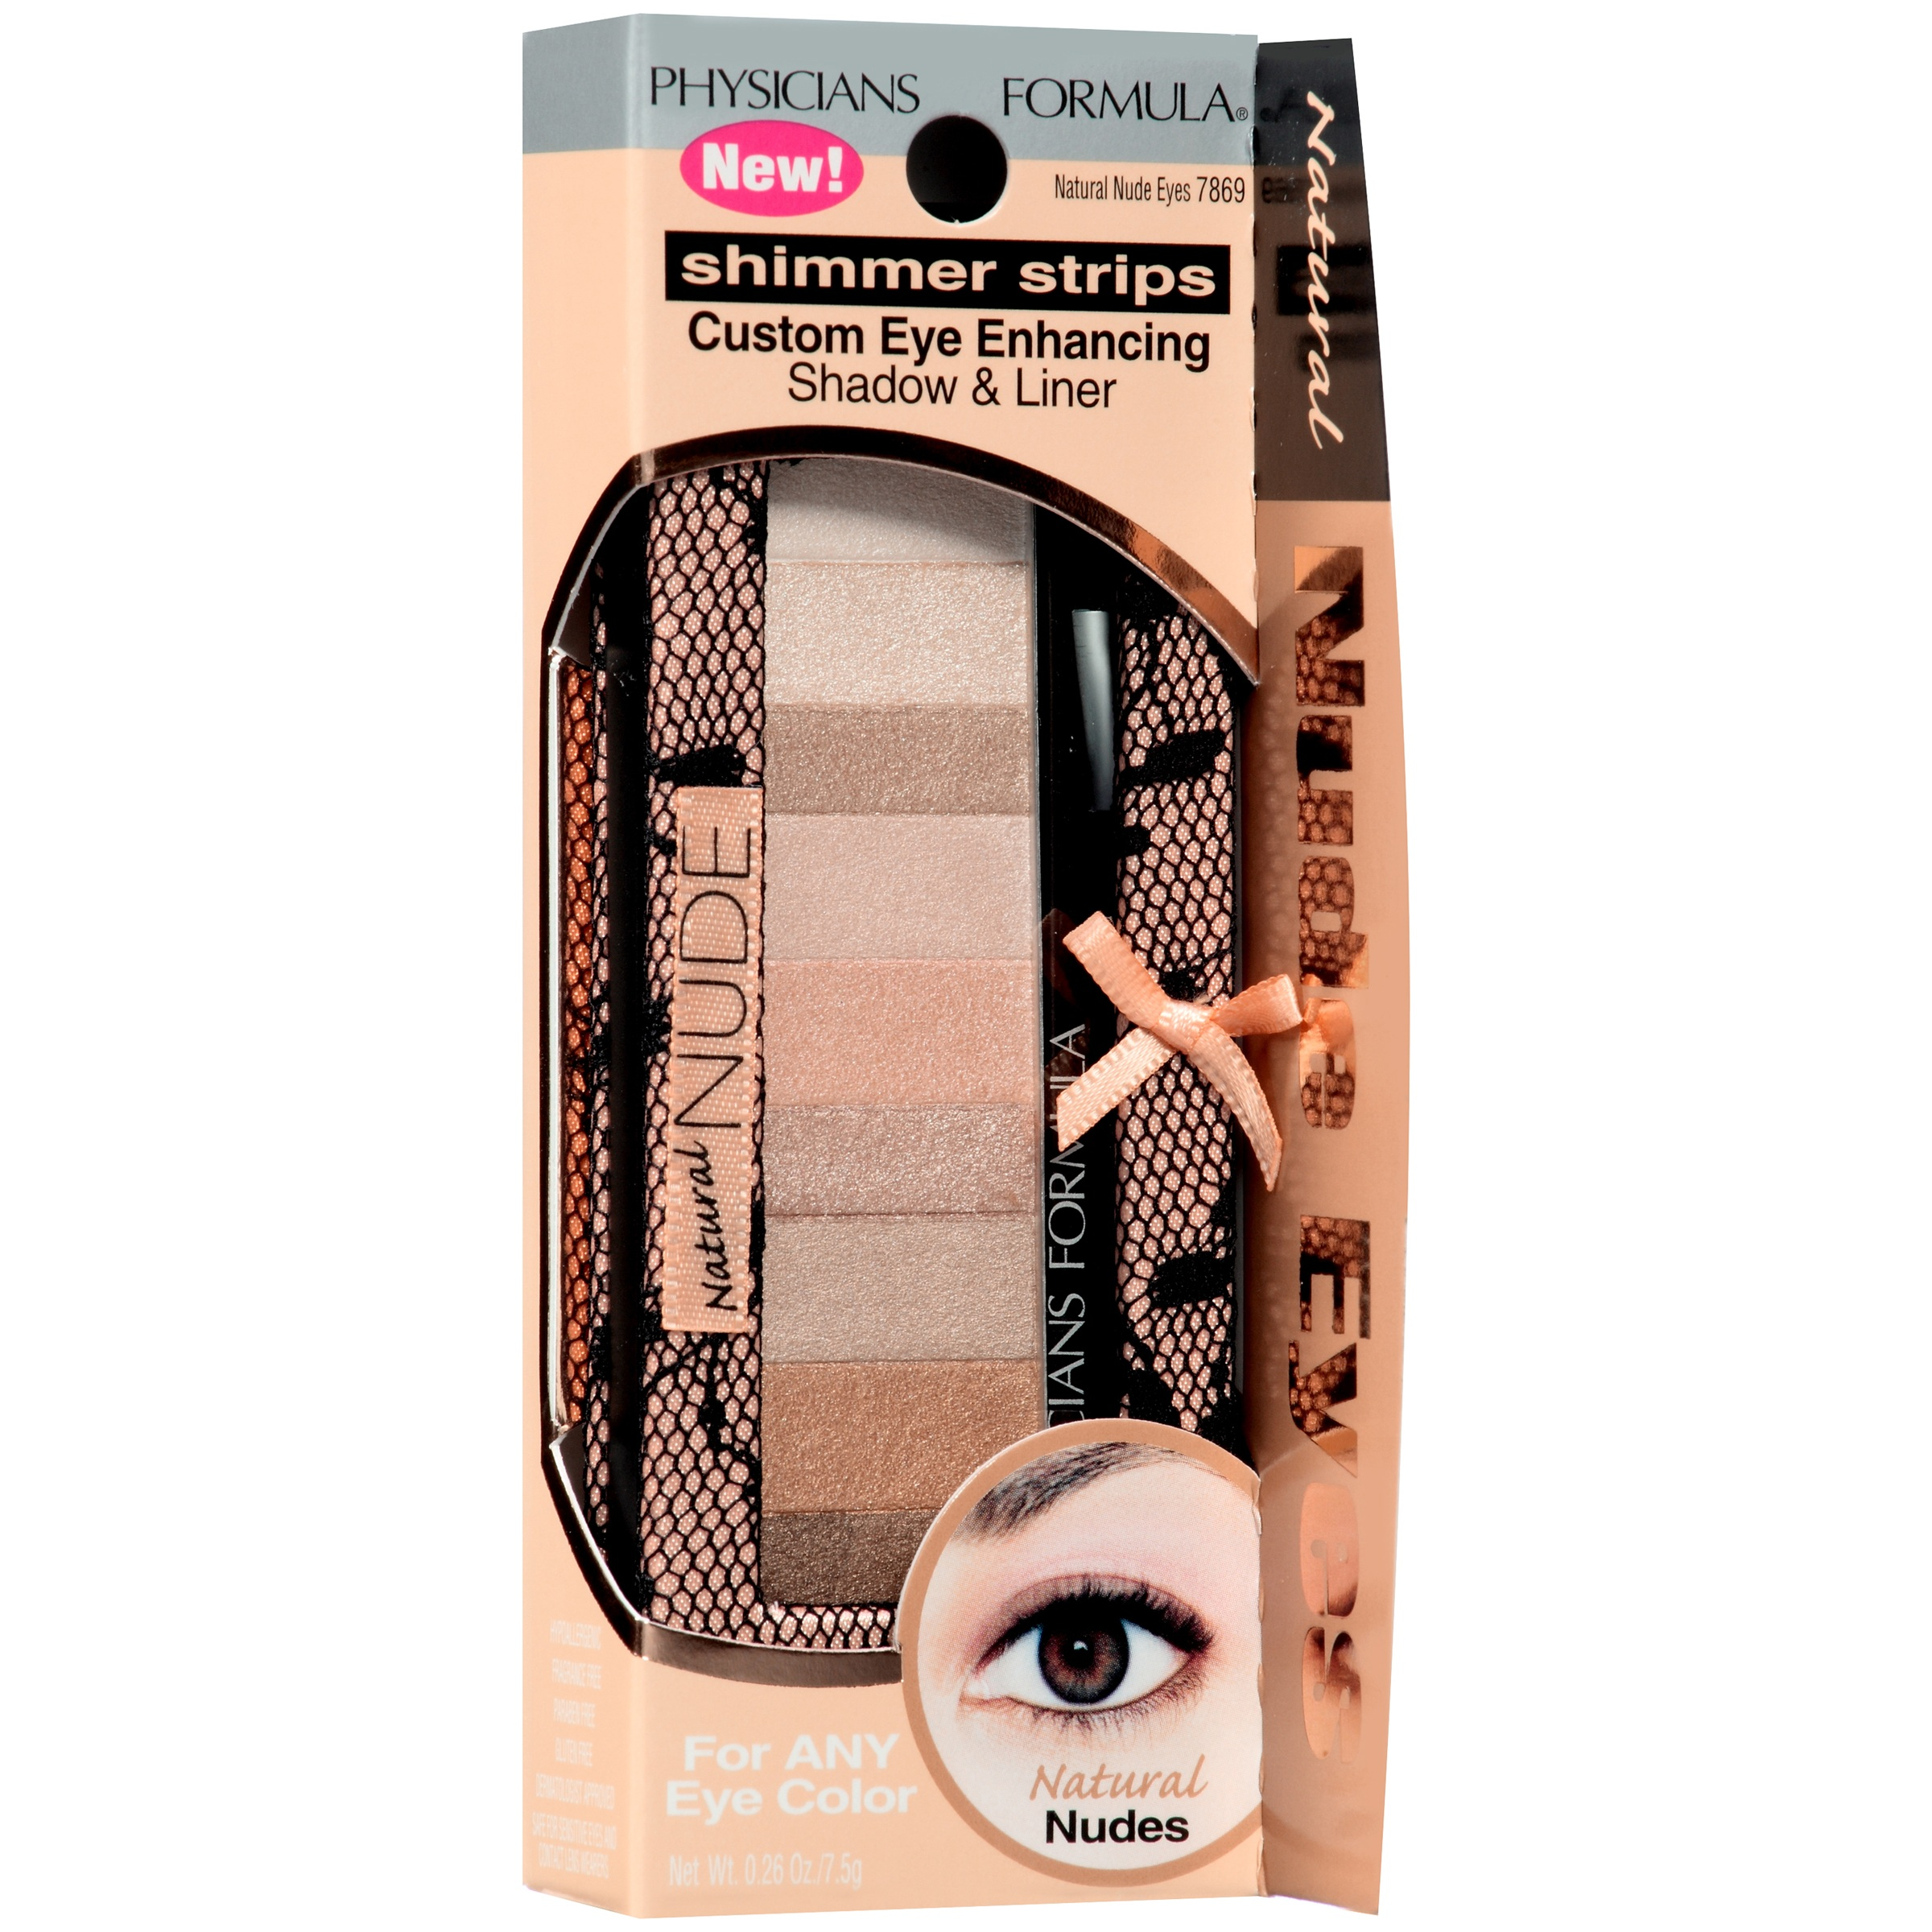 Physicians Formula Shimmer Strips Custom Eye-Enhancing Shadow & Liner, 7869 Natural Nude Eyes, 0.26 oz